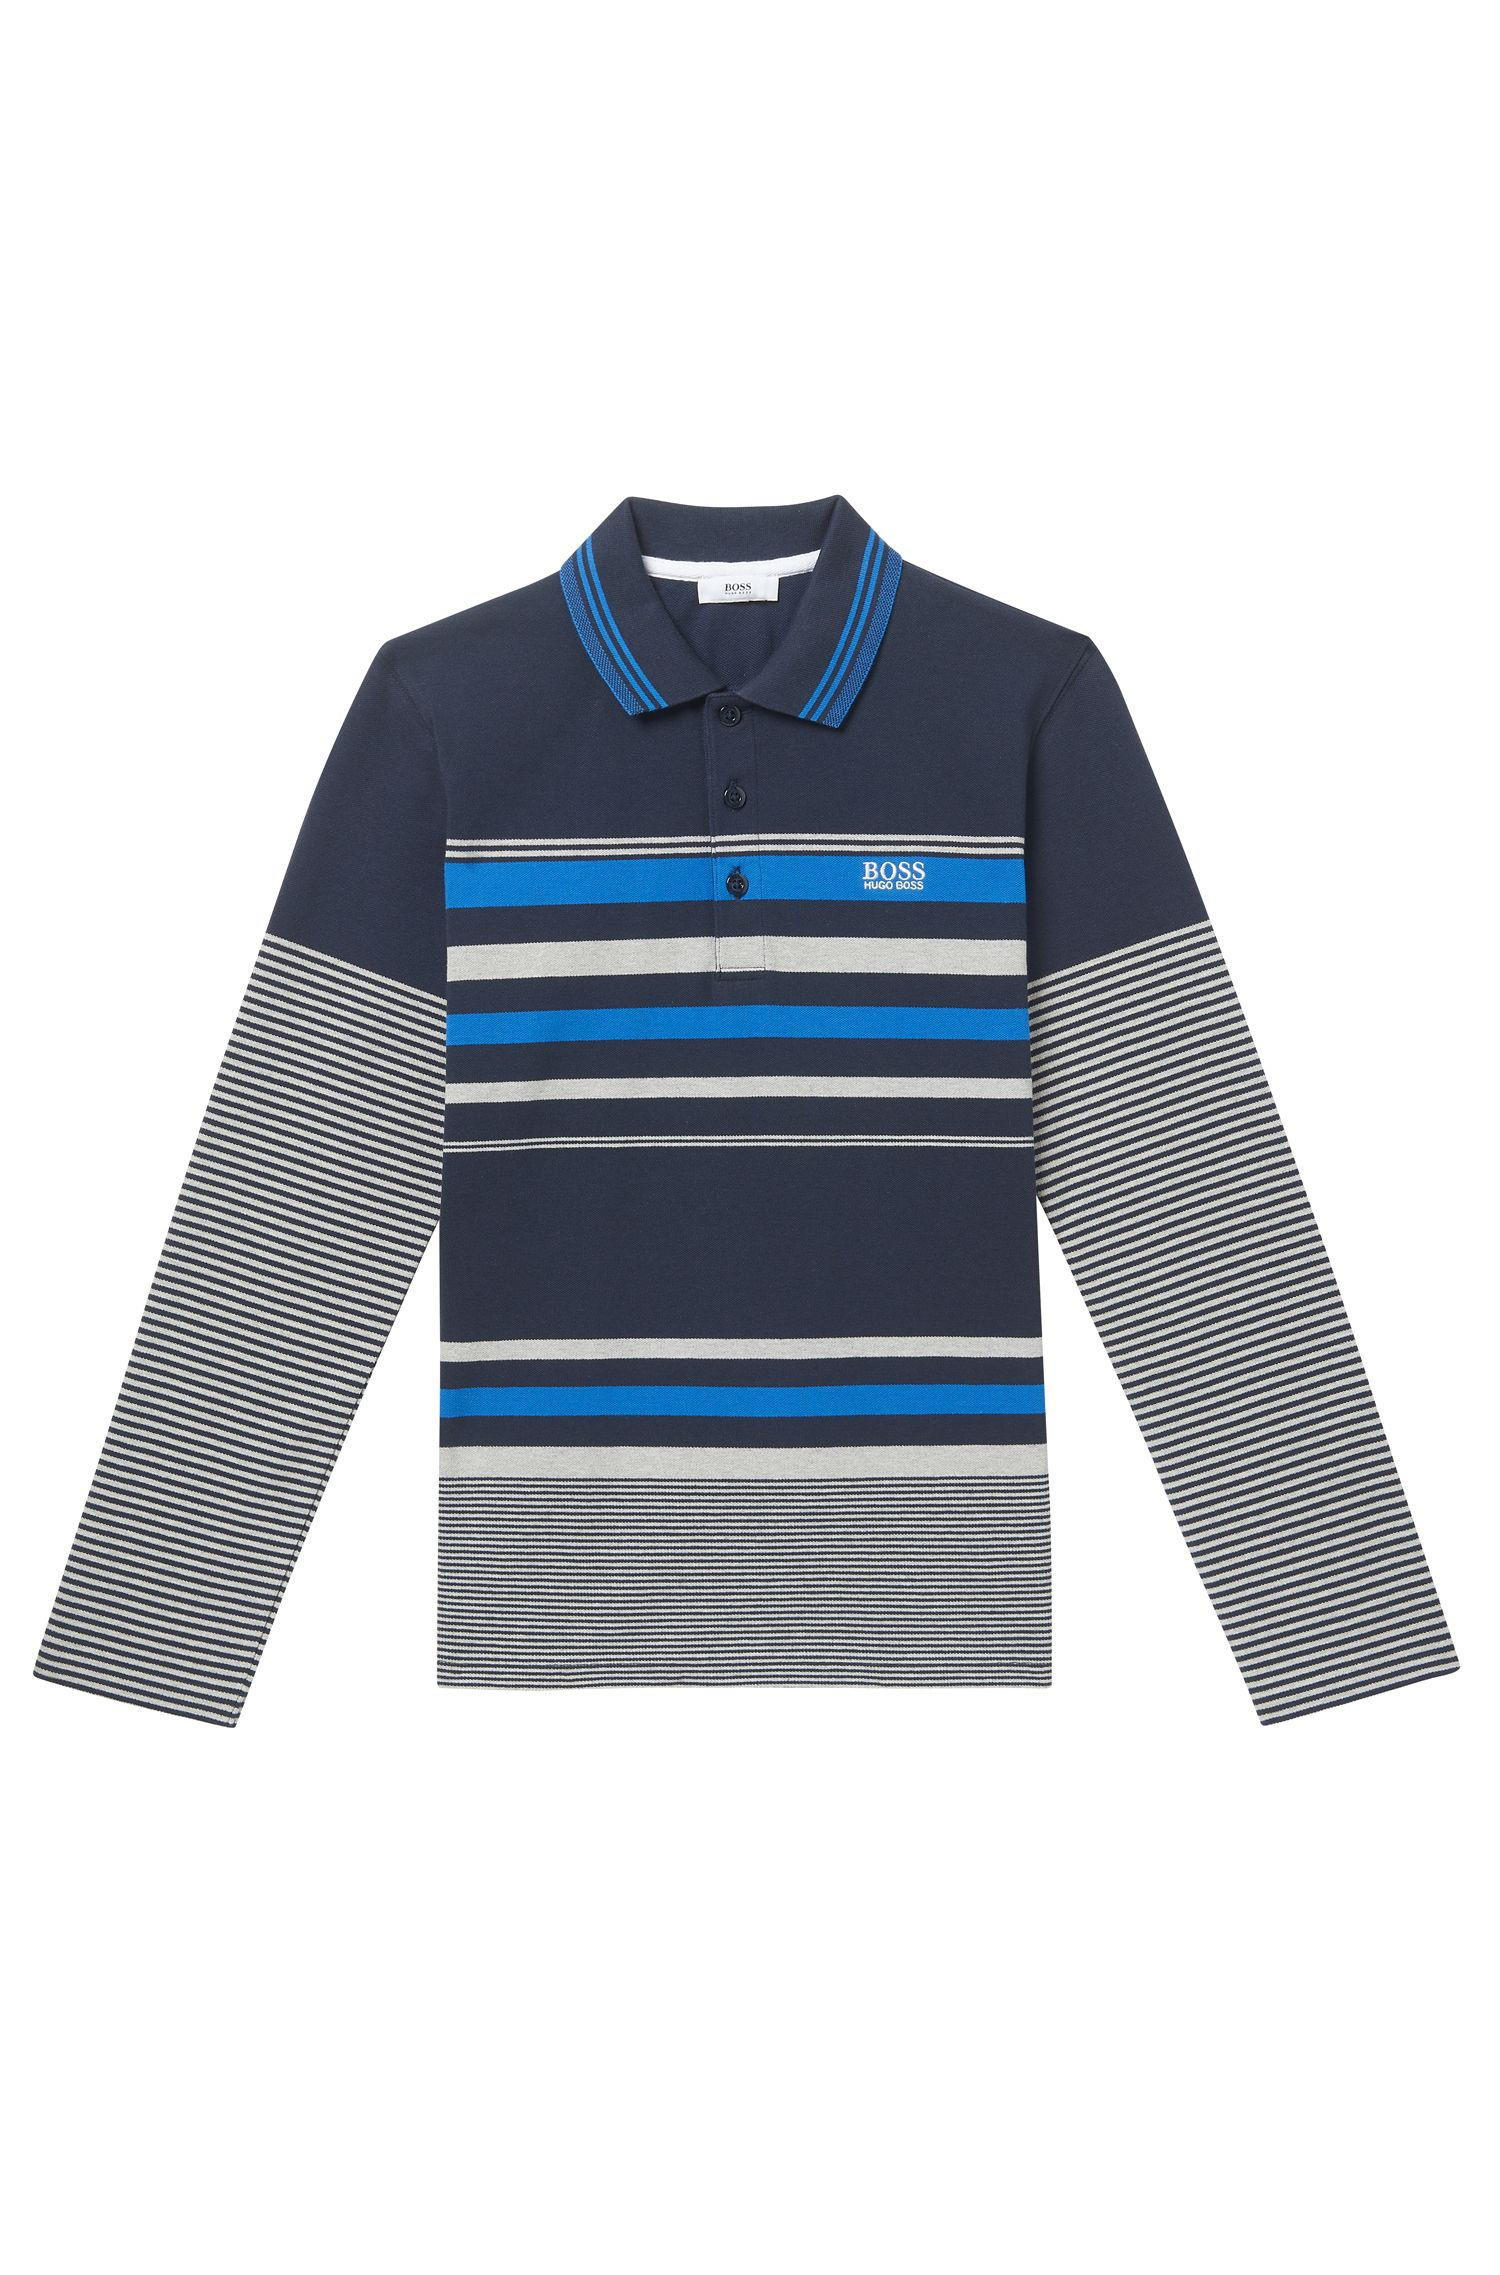 'J25A29' | Boys Cotton Polo Shirt, Patterned